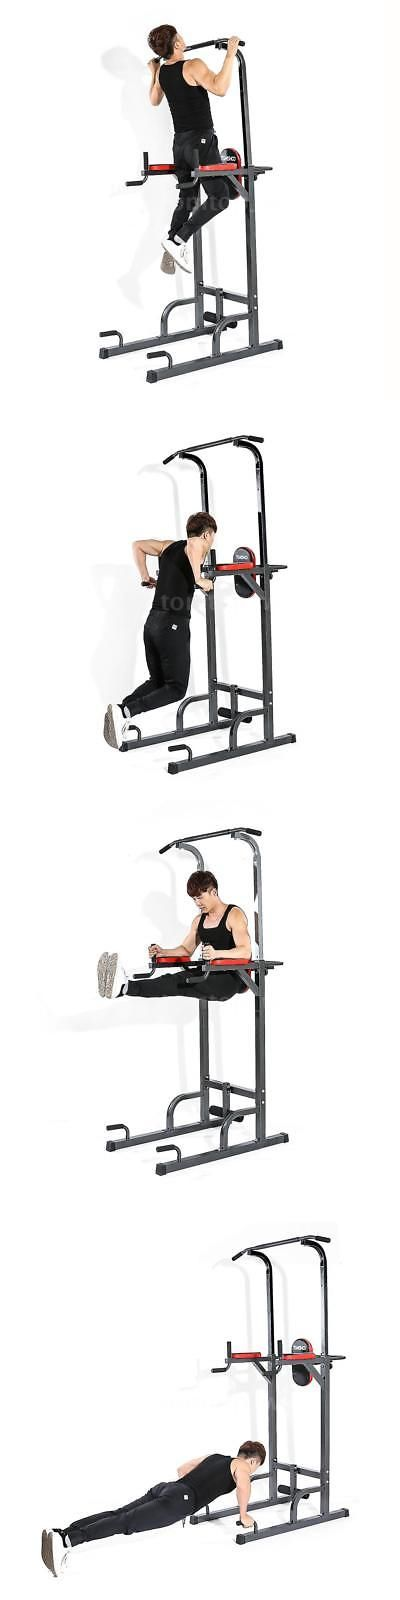 Abdominal Exercisers 15274: Tomshoo Pull Up Stand Rack Multi Station Power Tower Muscle Strength Toner Q9m4 -> BUY IT NOW ONLY: $109.82 on eBay!